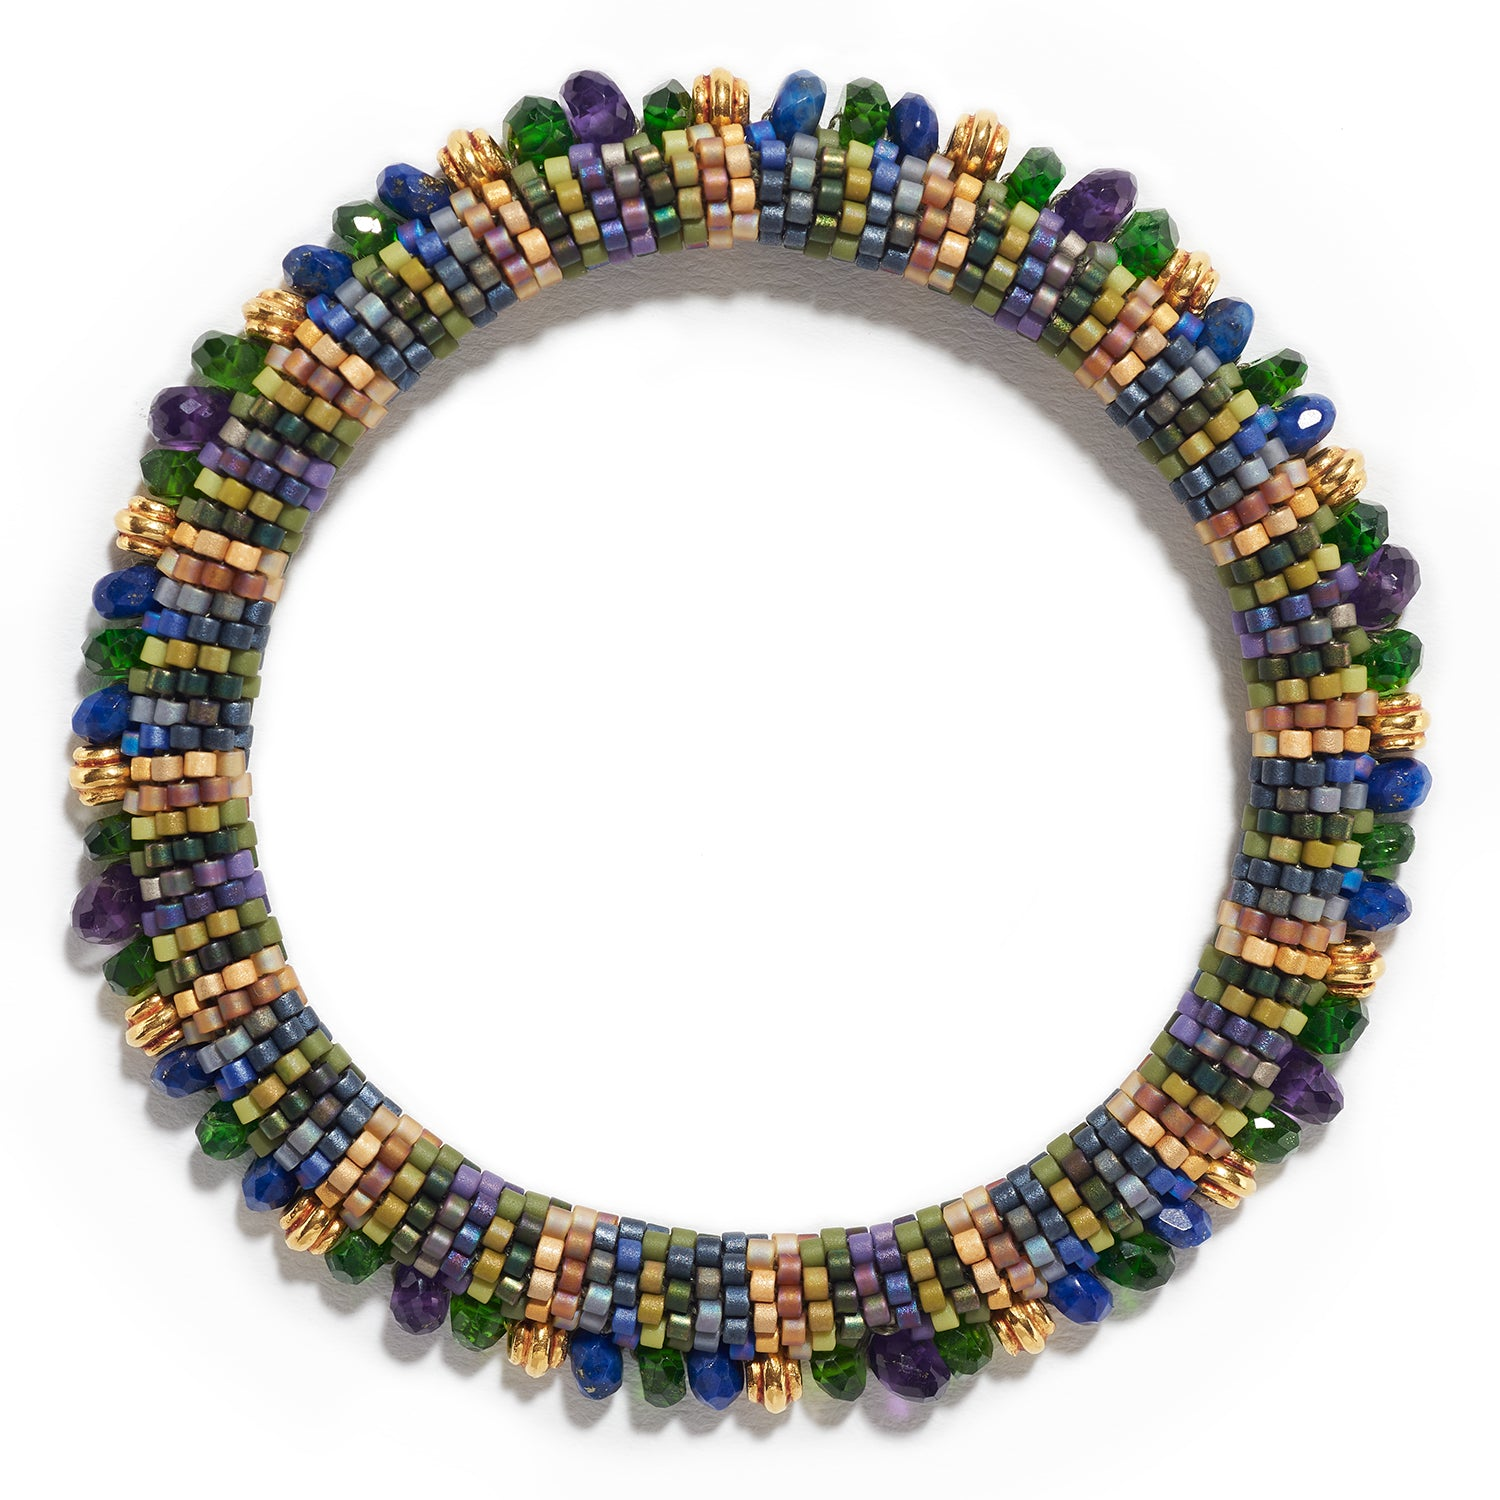 Lyda Bracelet with Amethyst, Chrome Diopside & Lapis